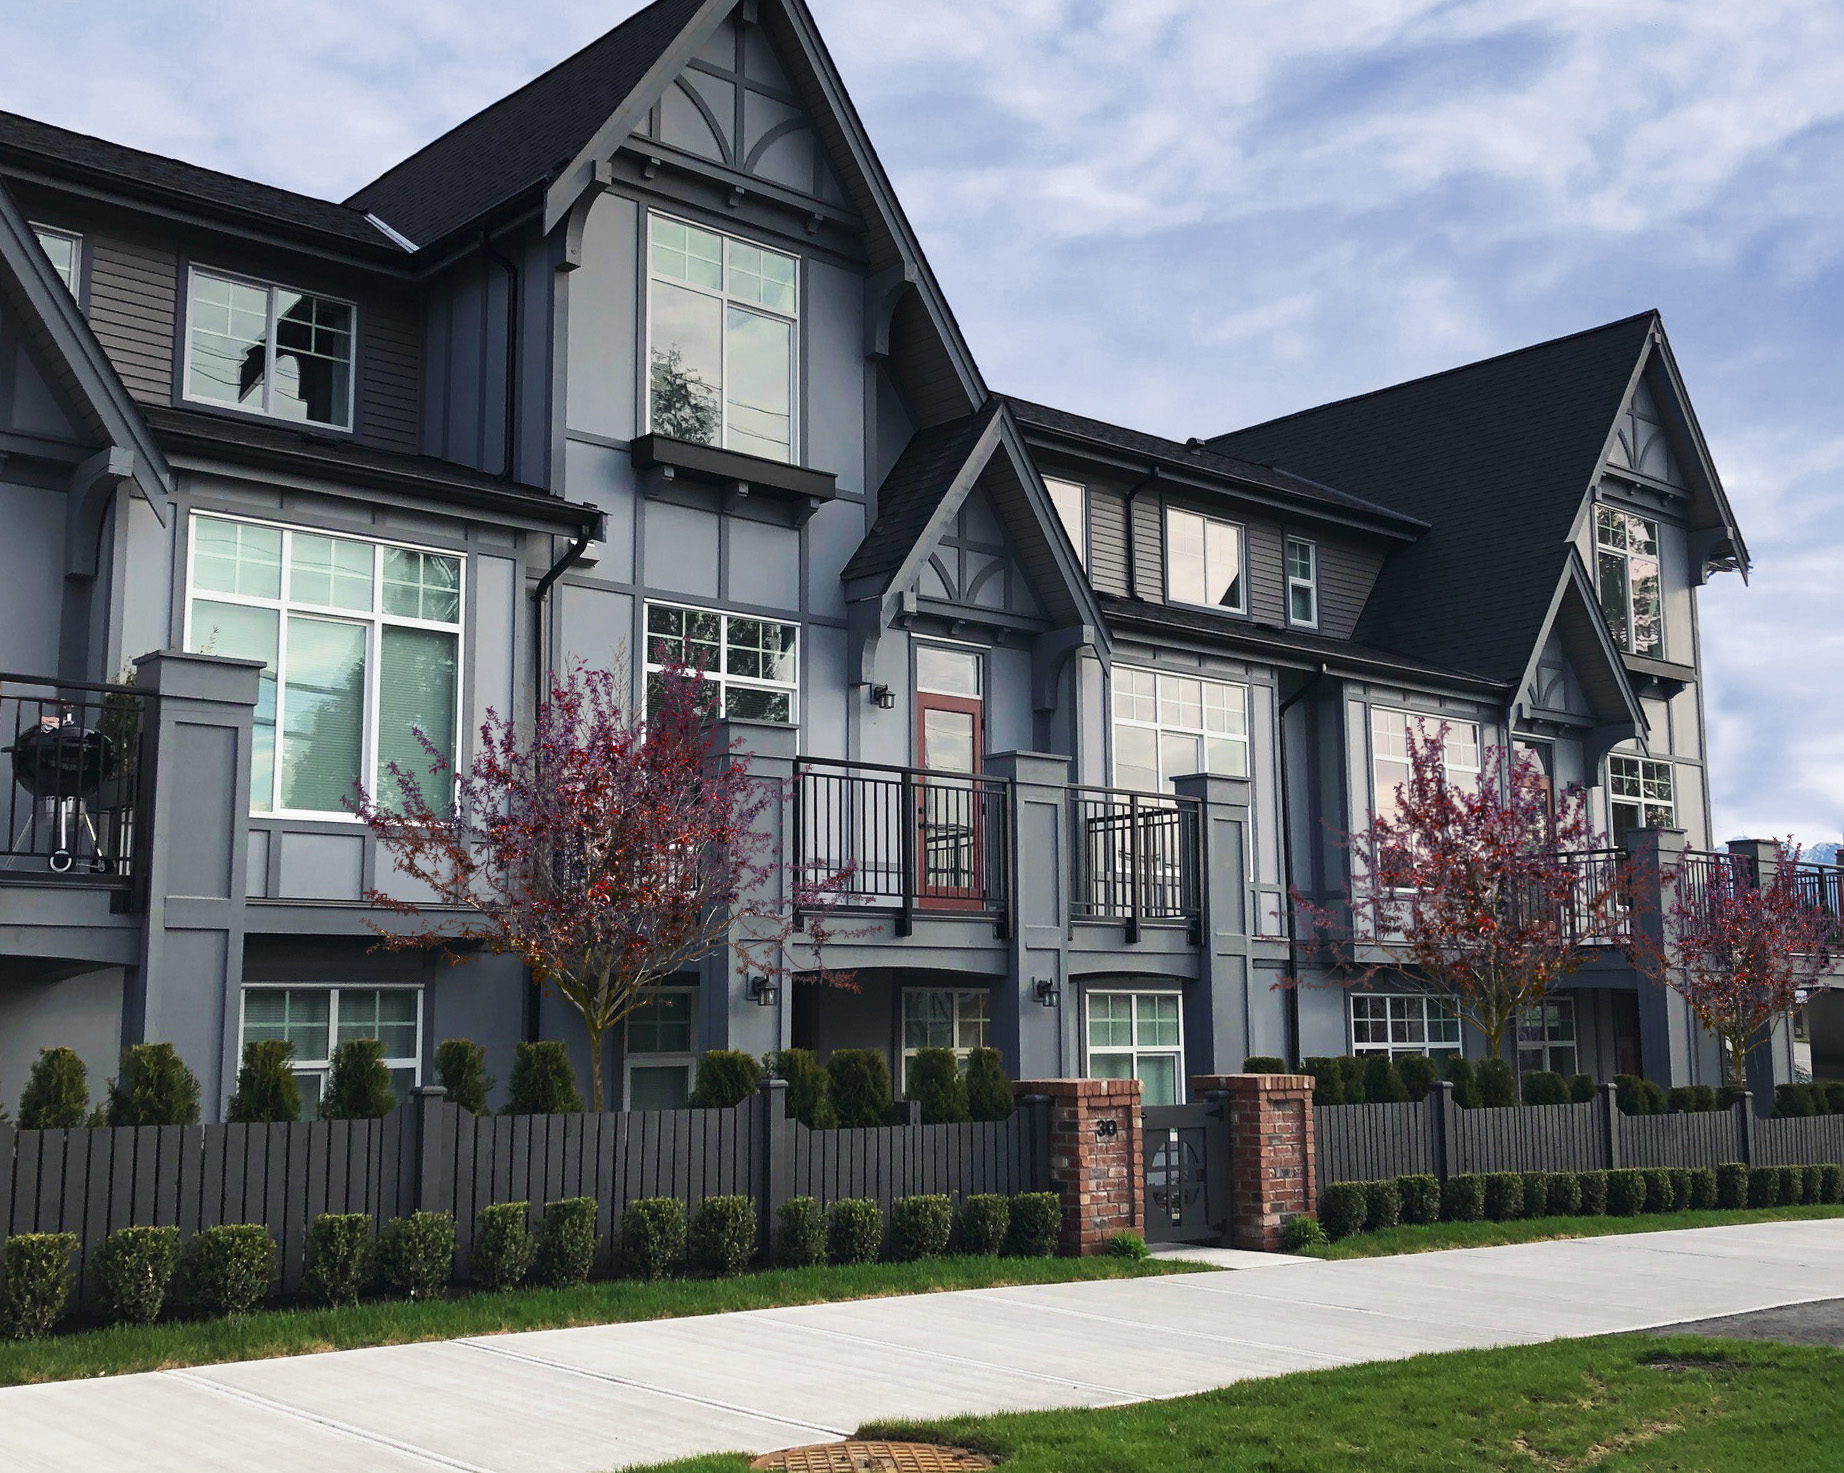 21 Victoria-Drive-Townhomes_EKISTICS-with-tree